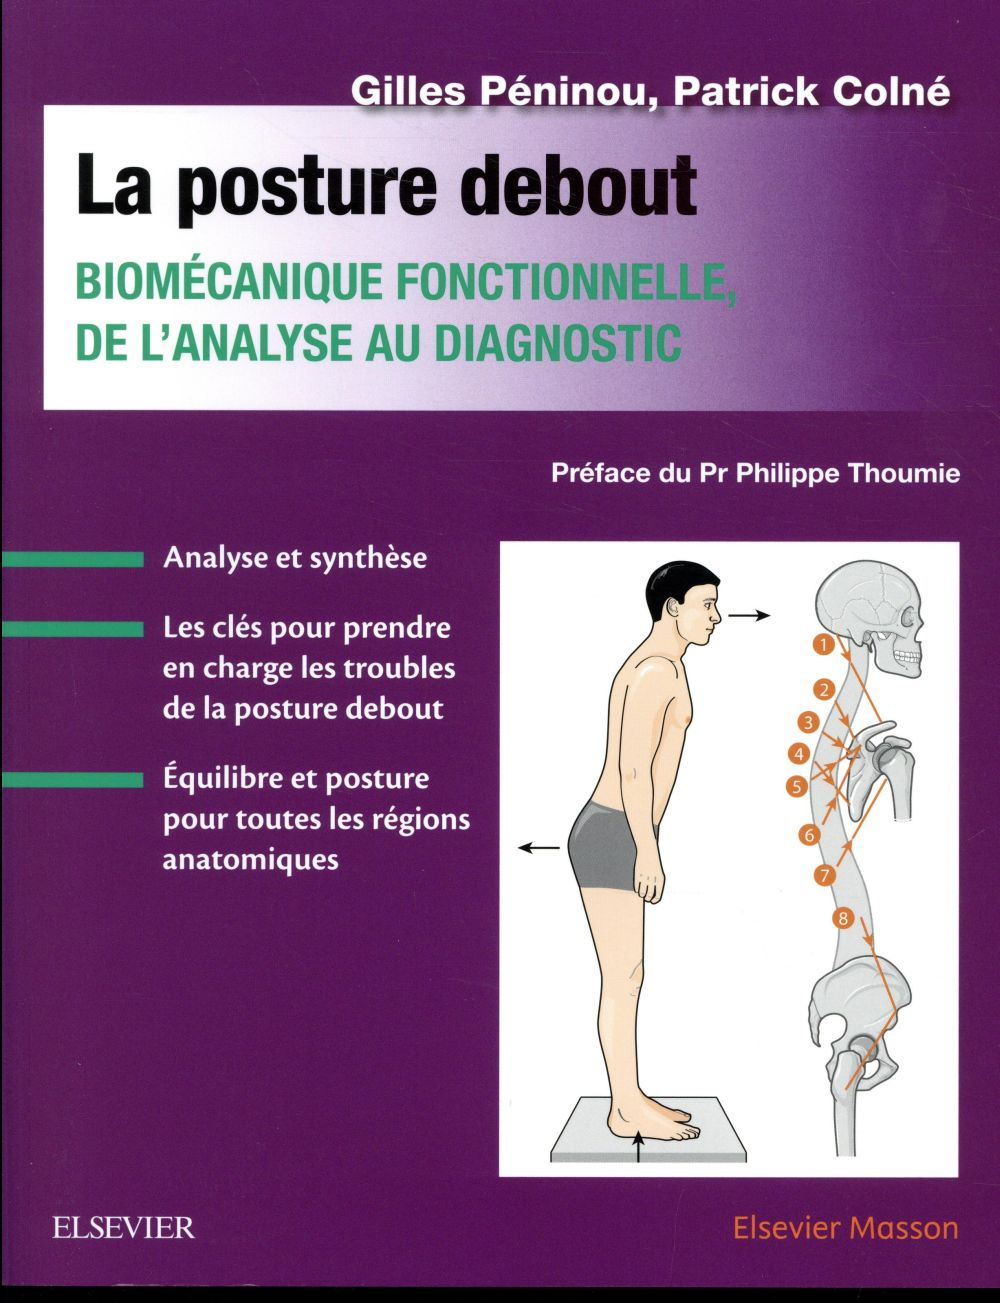 La posture debout ; biomécanique fonctionnelle, de l'analyse au diagnostic